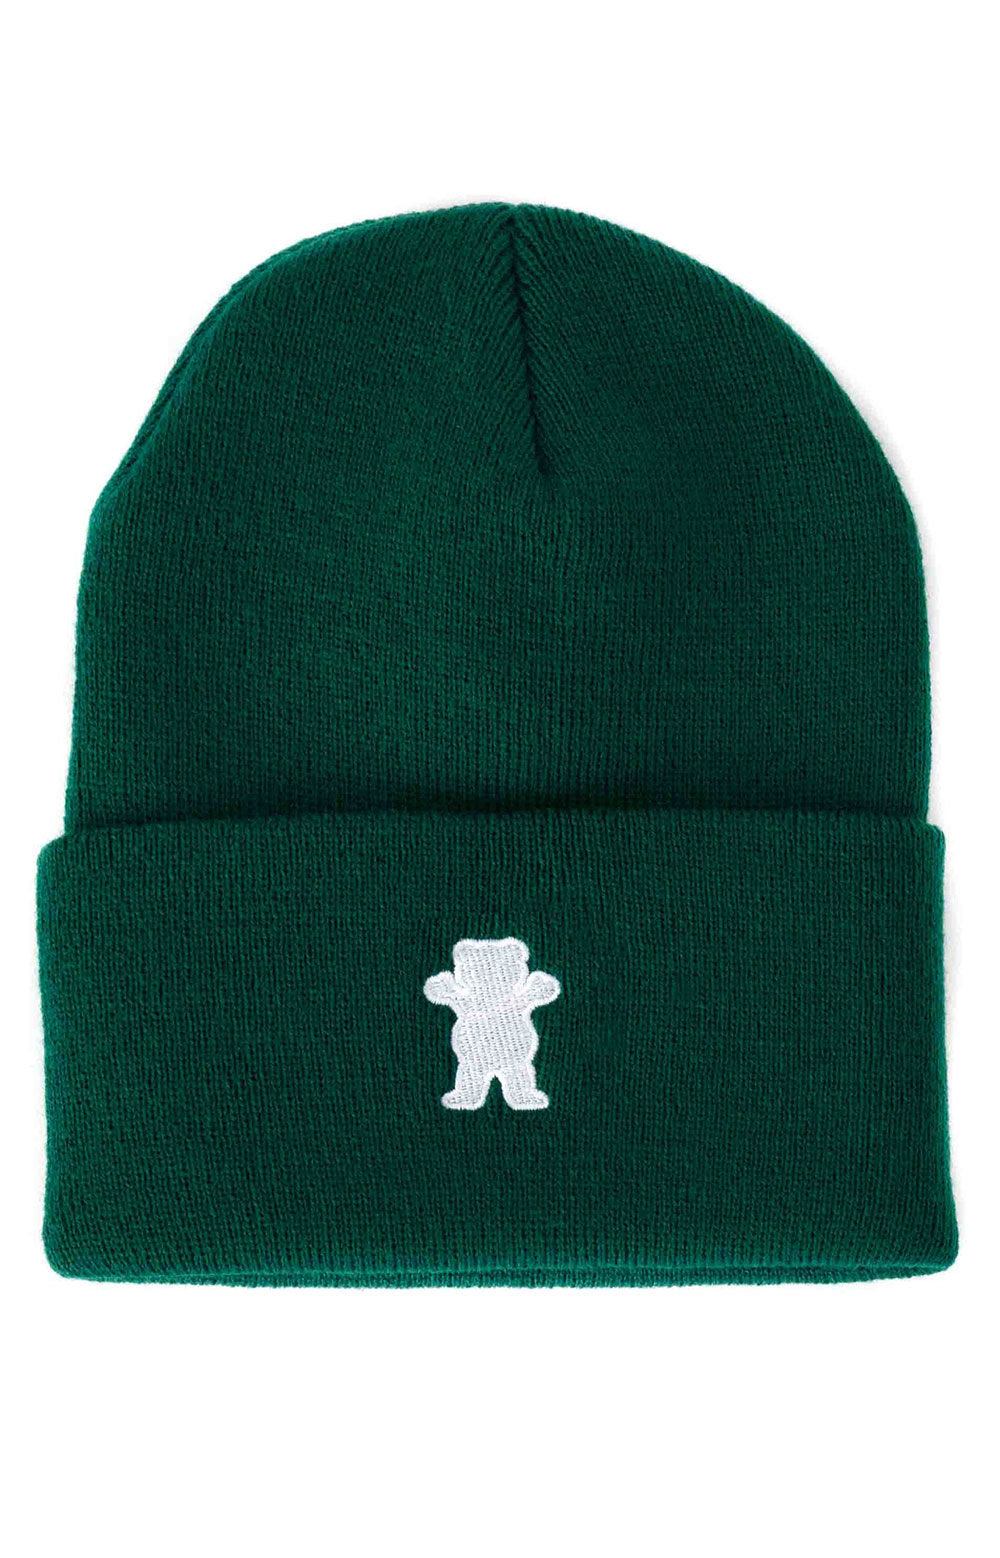 OG Bear Embroidered Beanie - Forest Green